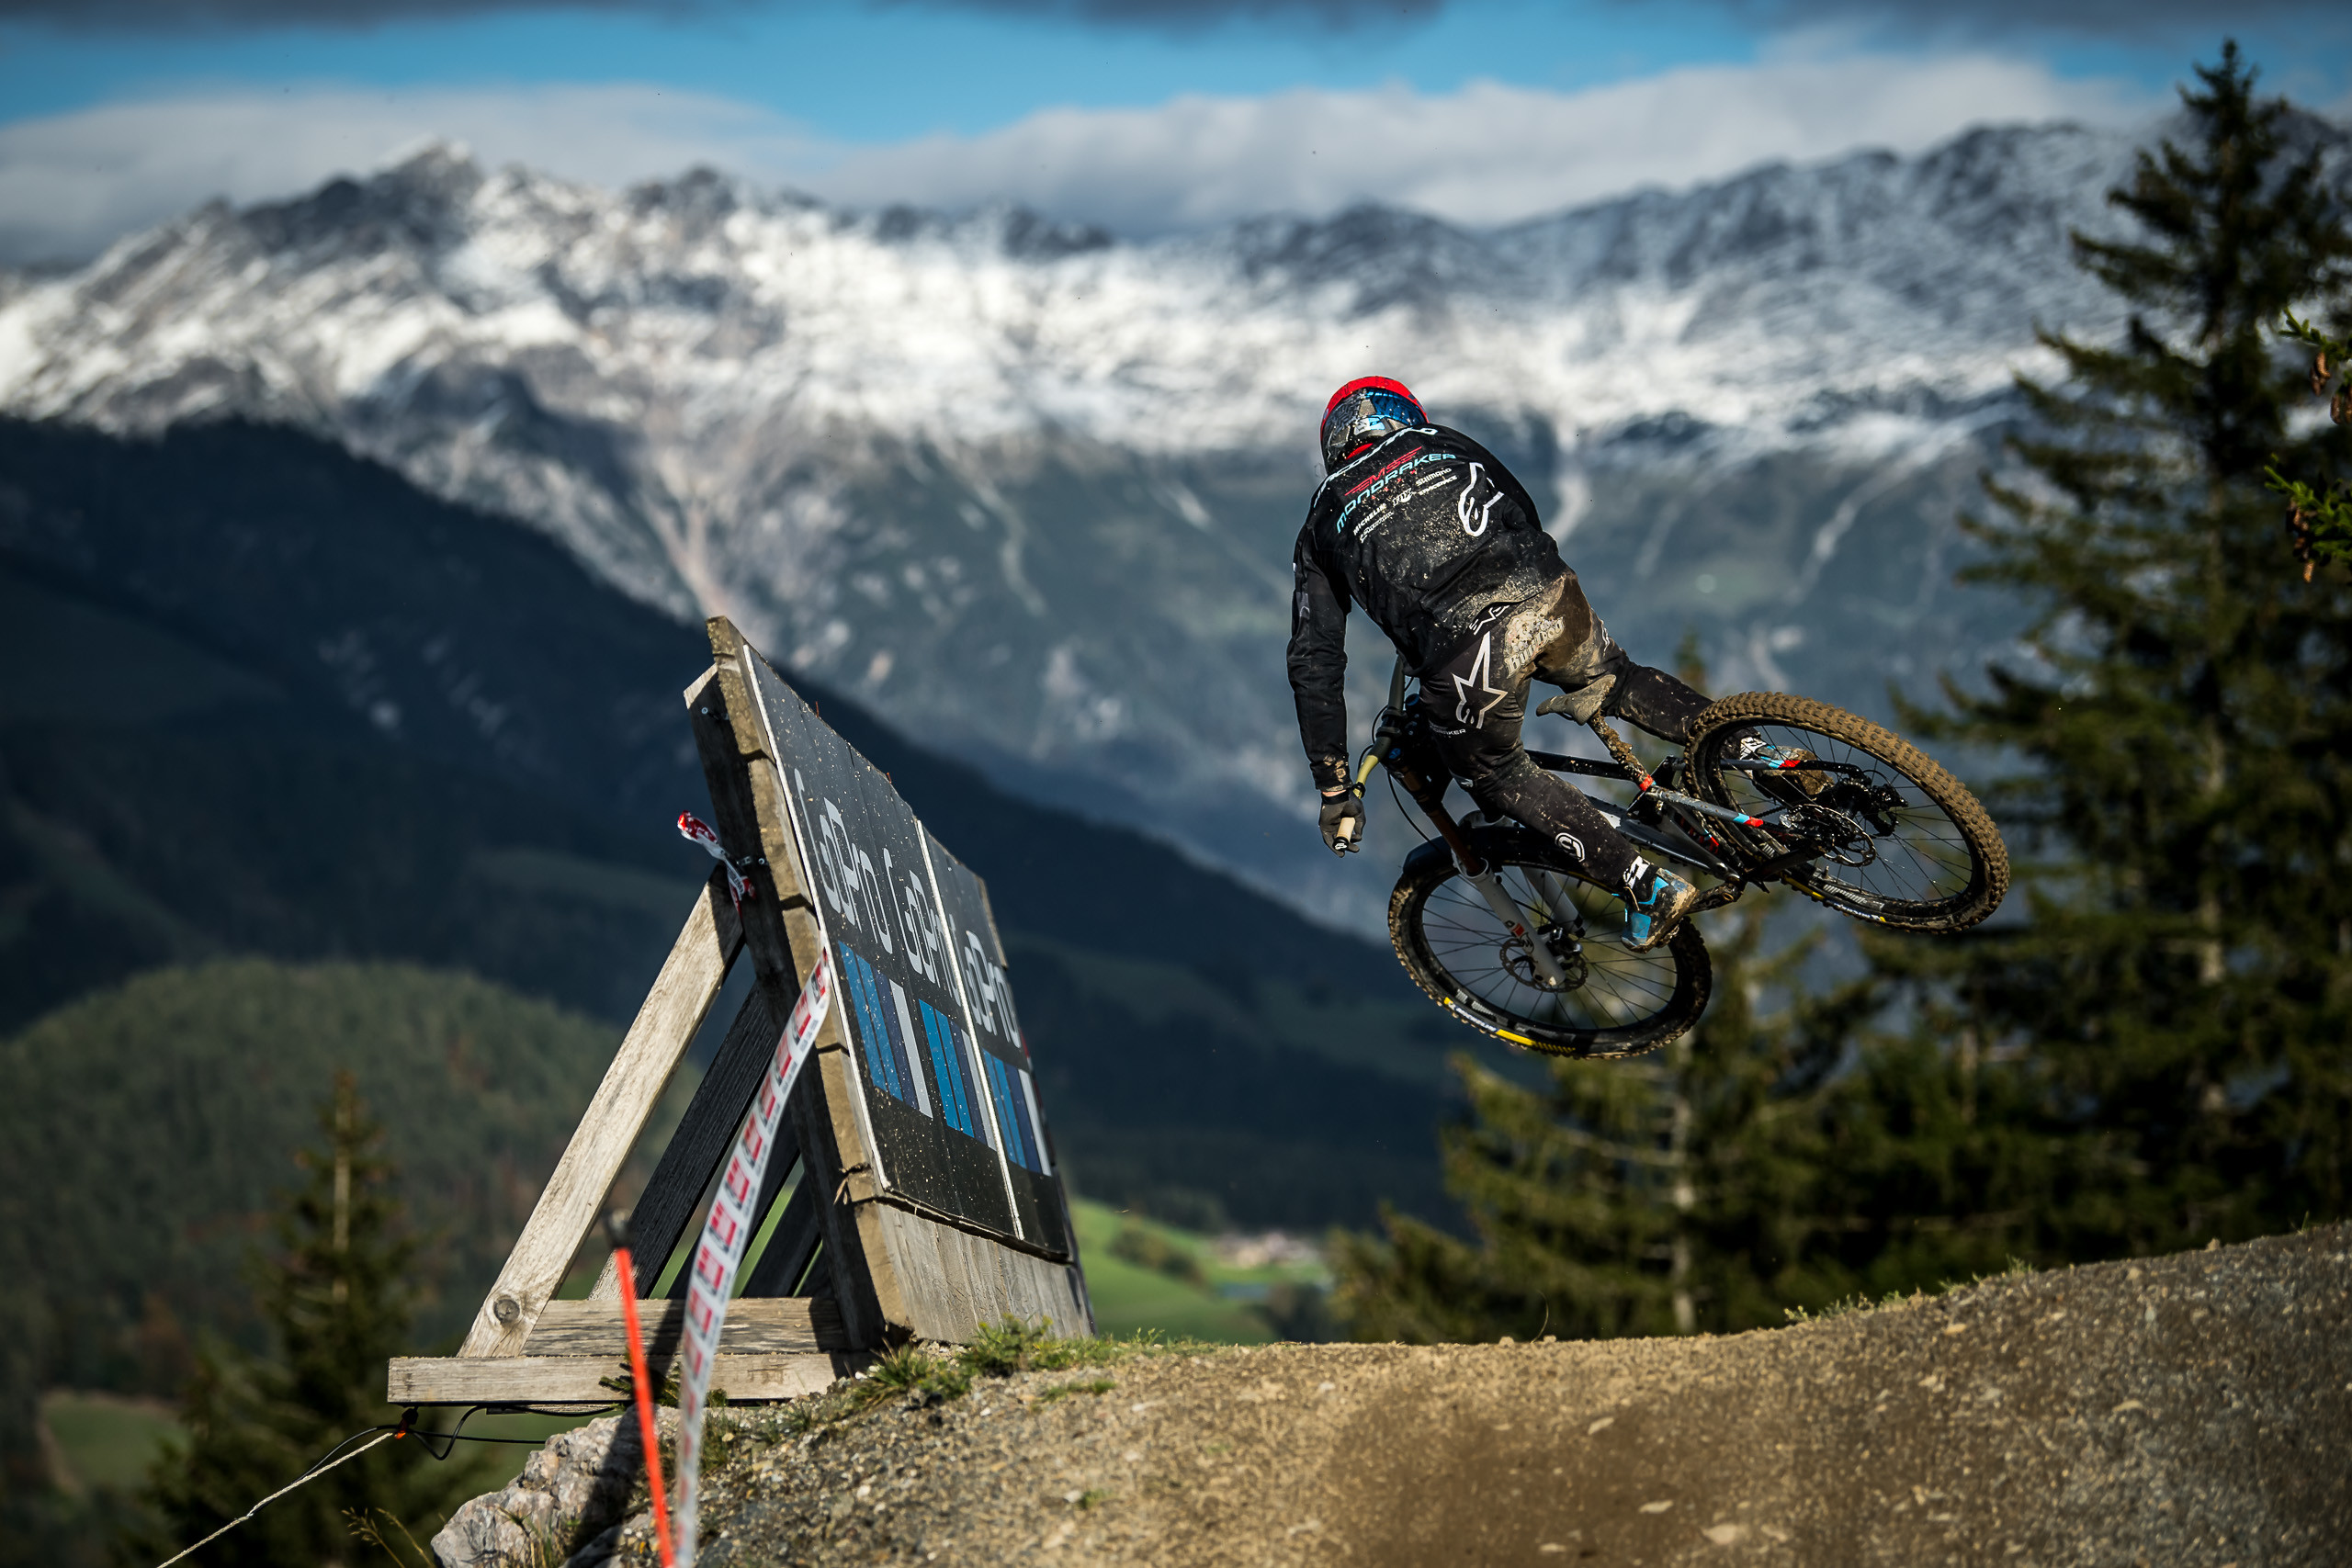 All set for Slovenia! Maribor DH World Cup coming next…